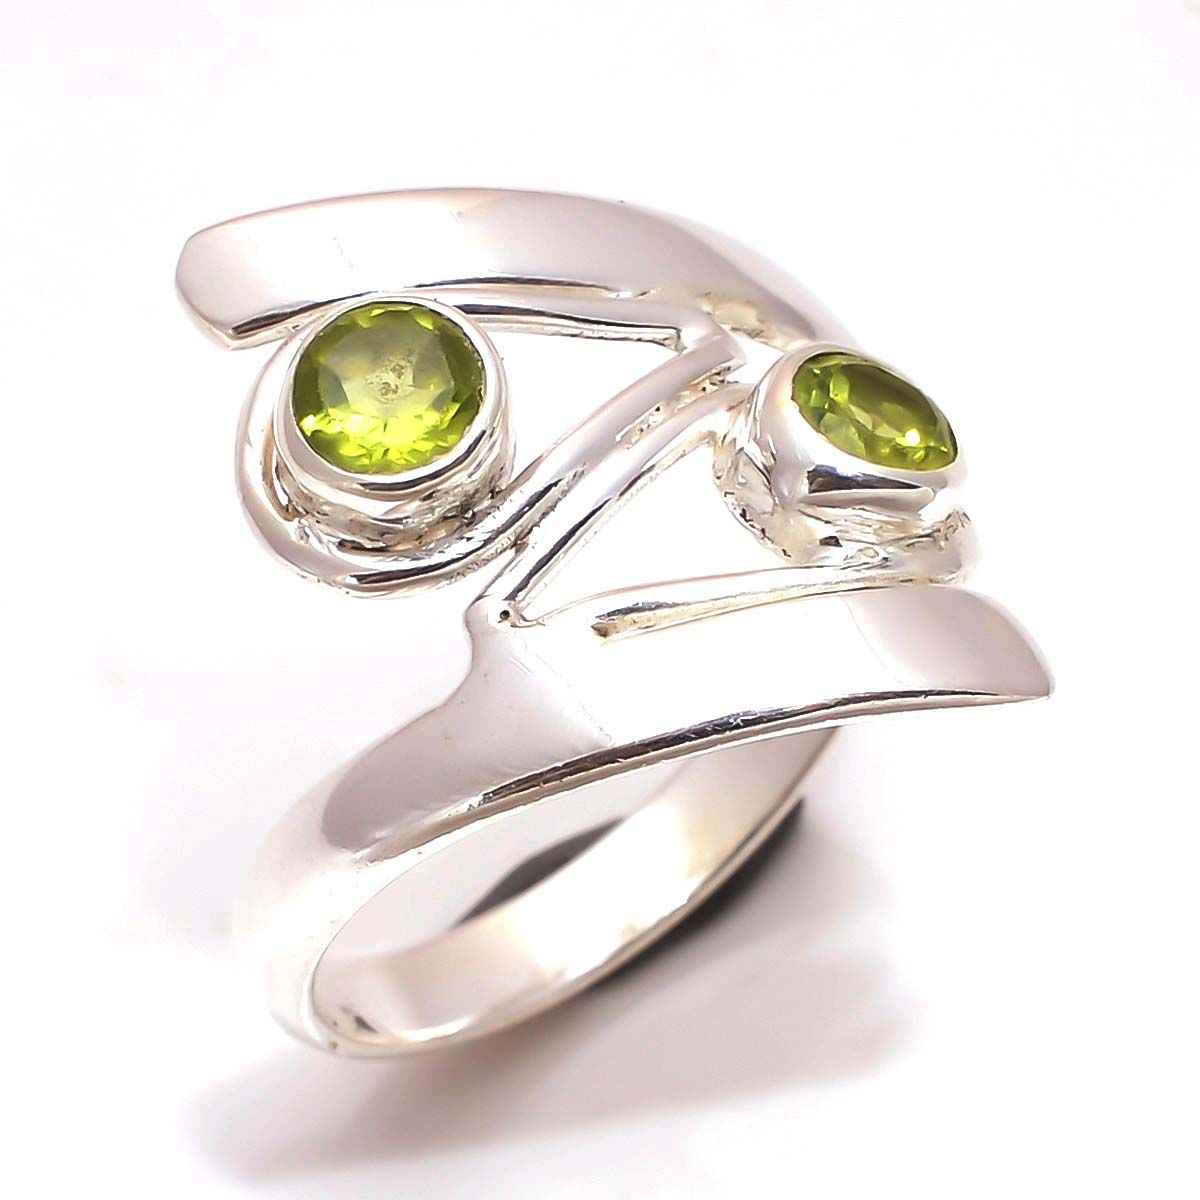 Peridot Gemstone 925 Sterling Silver Ring Size 5.5